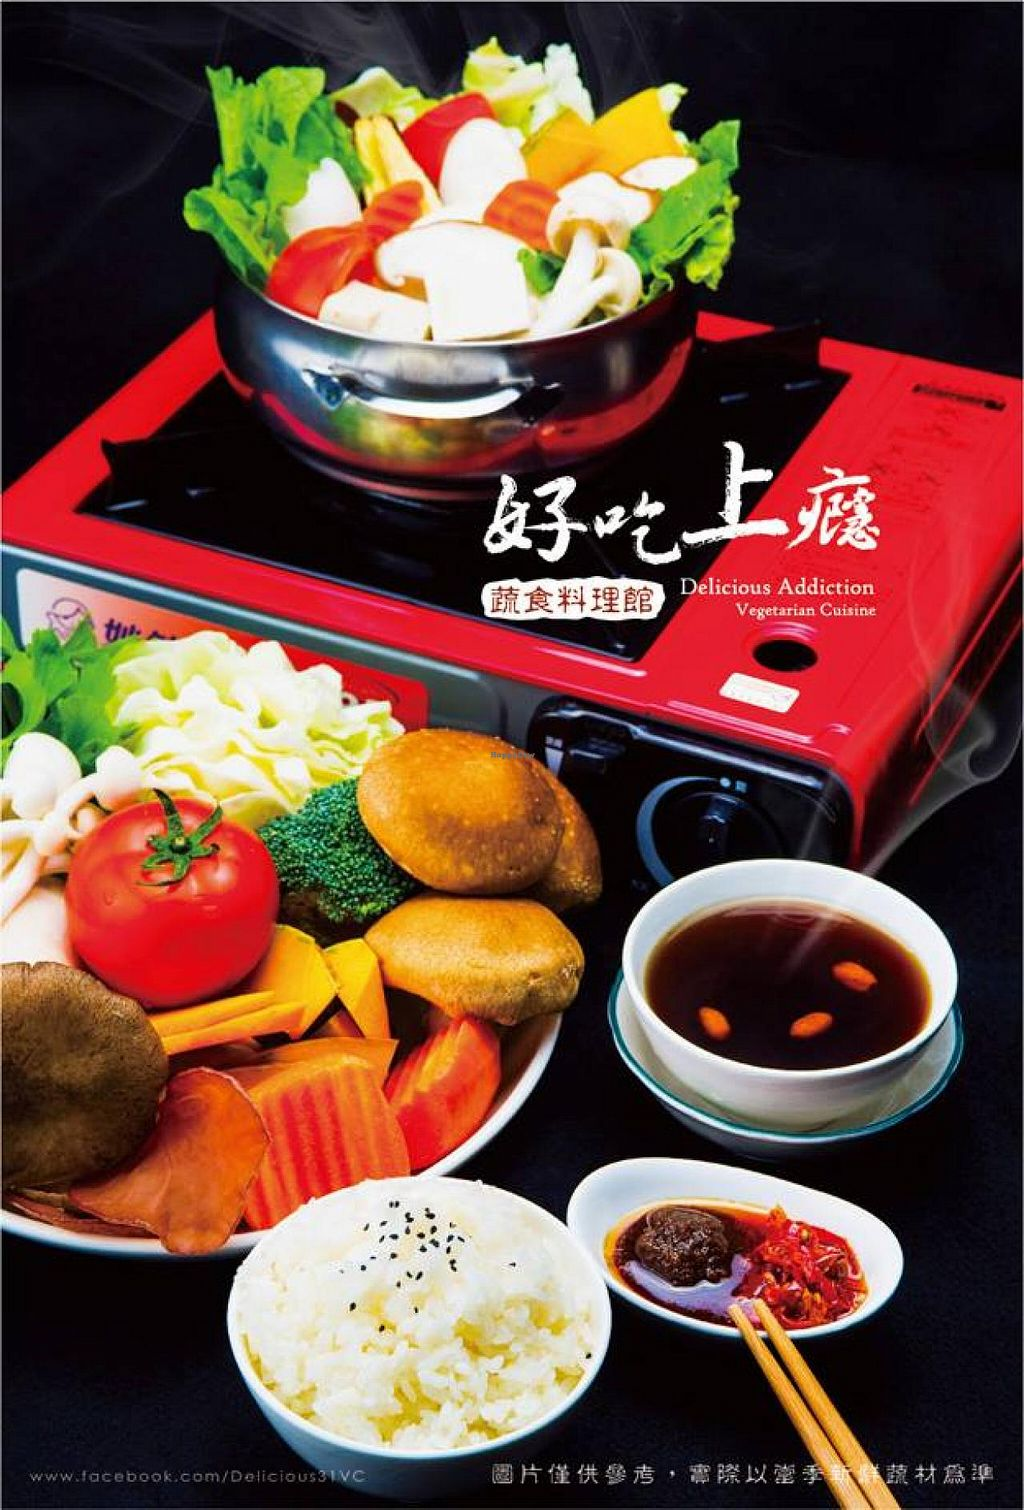 """Photo of Hao Chi Shang Yin  by <a href=""""/members/profile/nickb"""">nickb</a> <br/>Vegan hot pot <br/> November 1, 2014  - <a href='/contact/abuse/image/52714/84356'>Report</a>"""